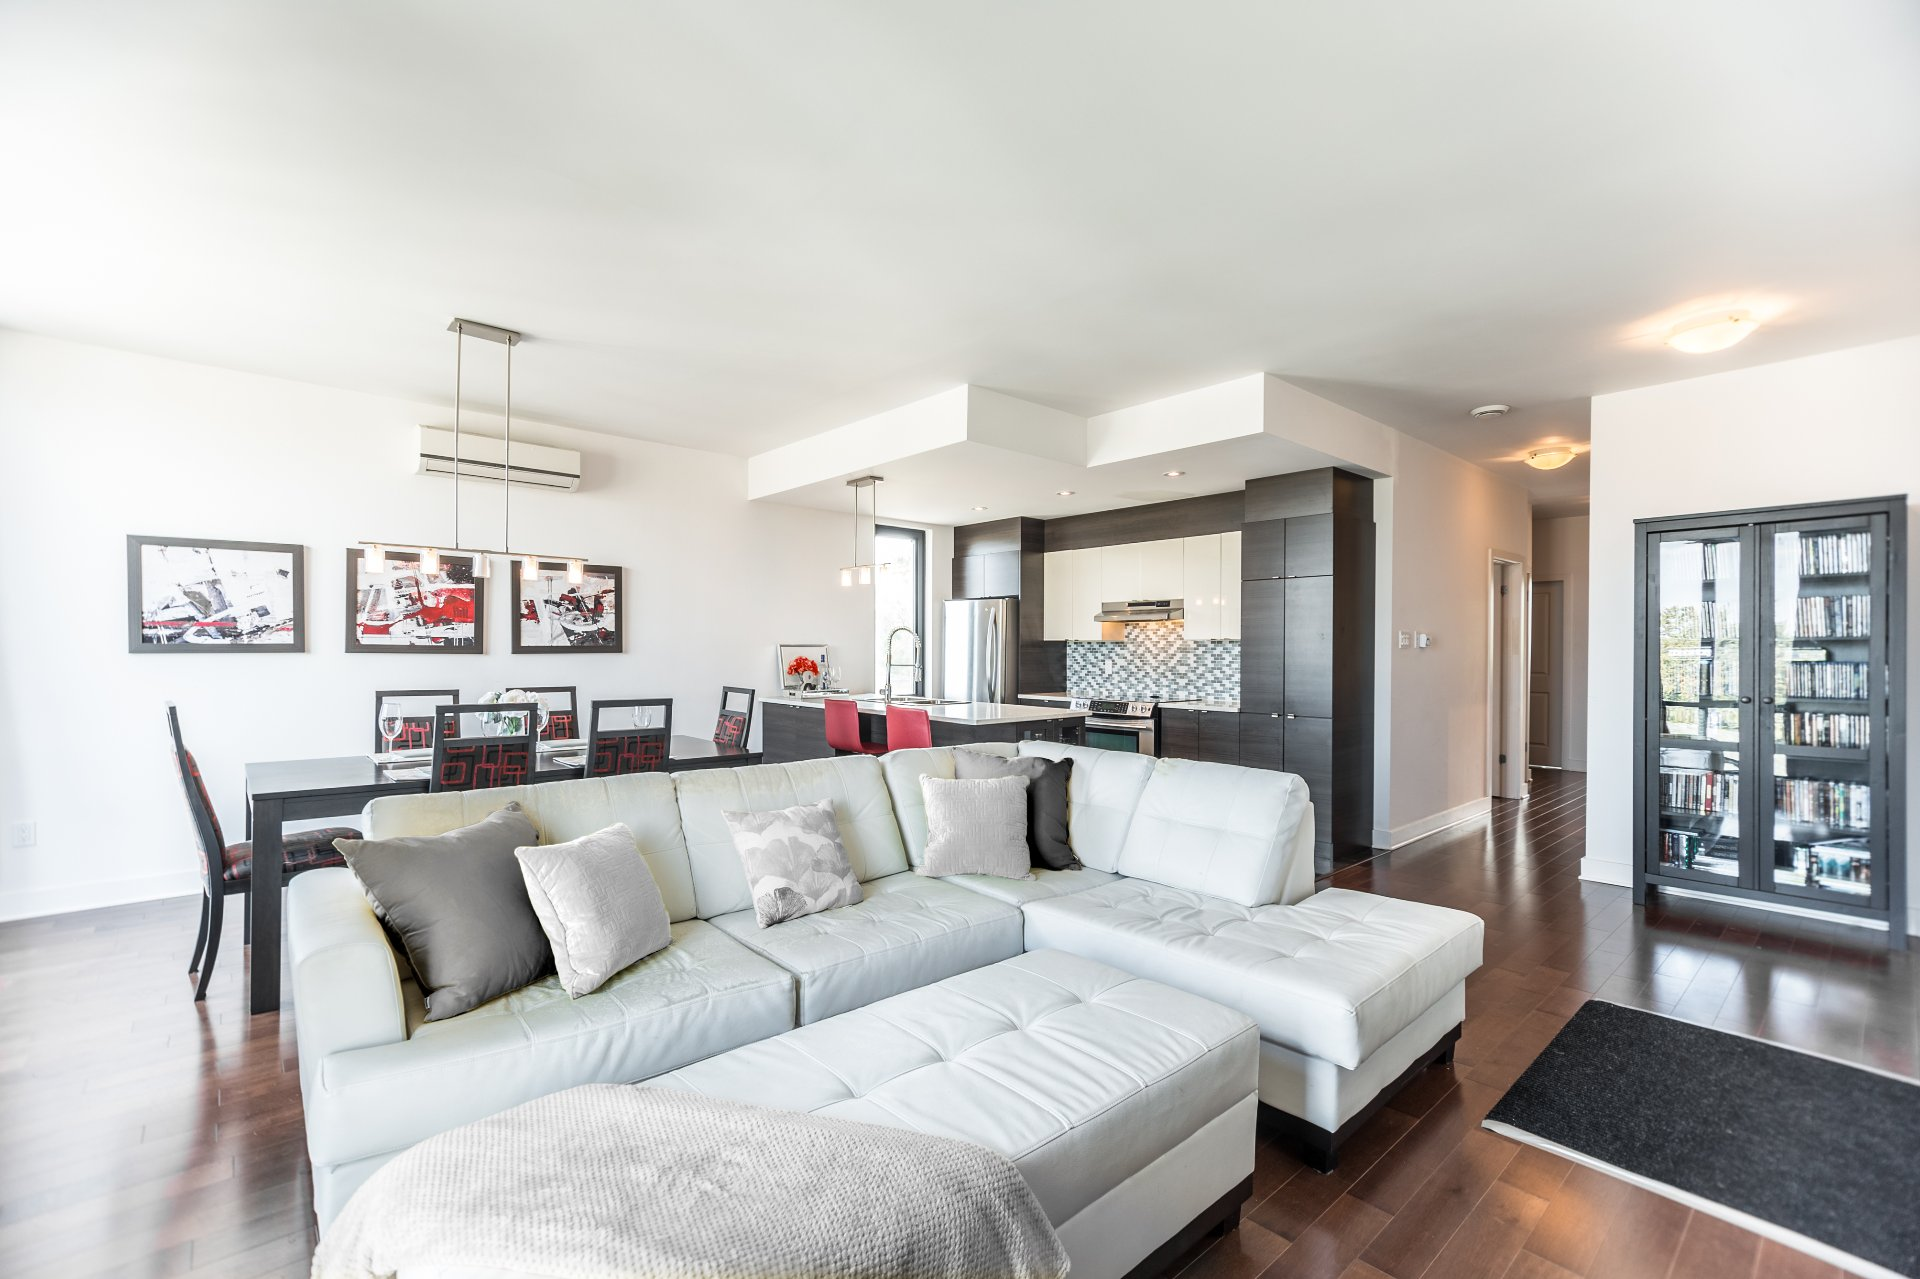 Condo For Sale Villeray Saint Michel Parc Extension Montreal Buy